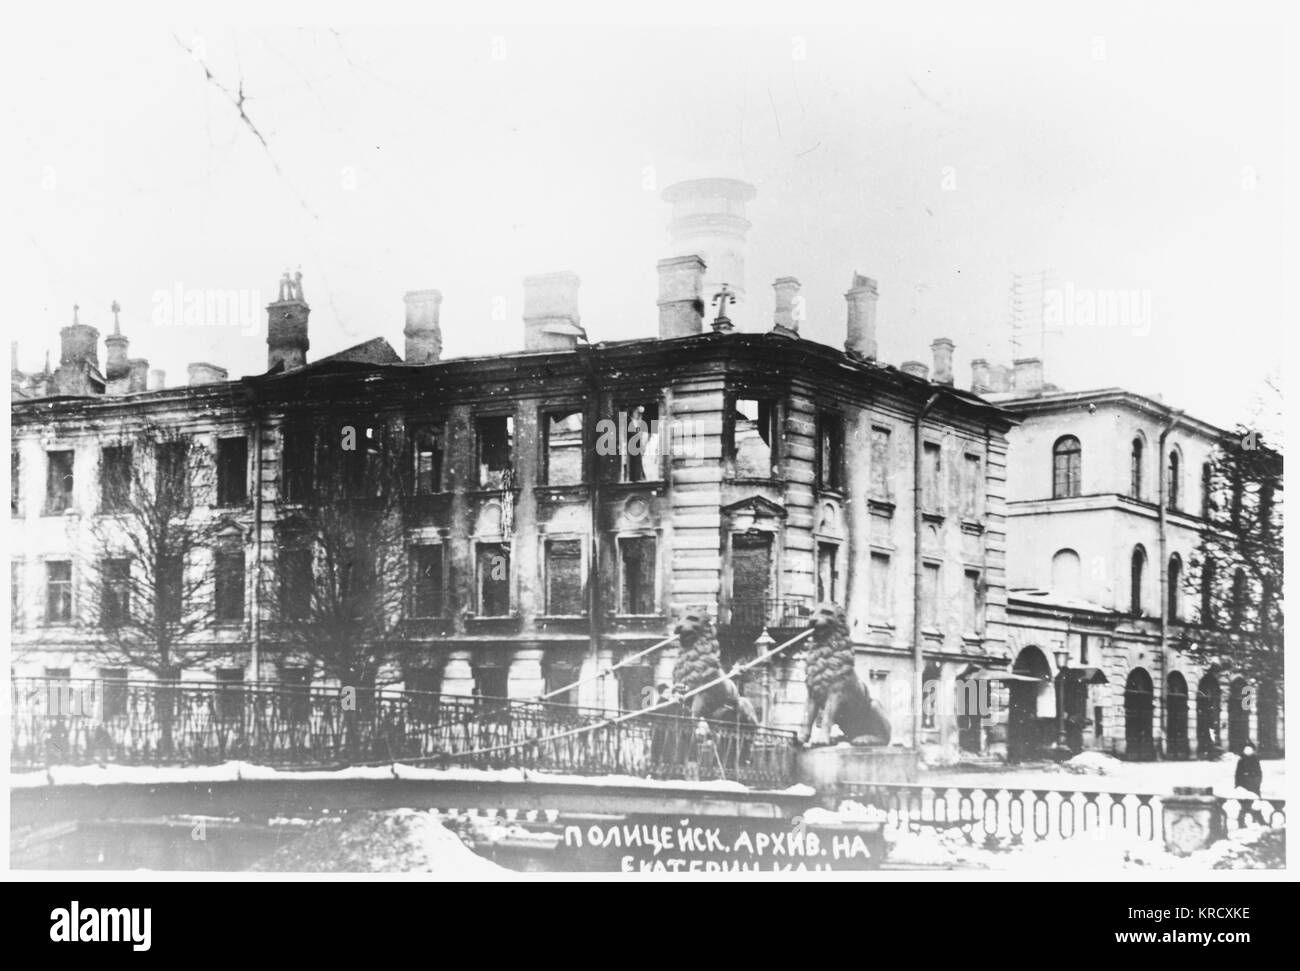 The smoldering remains of the  Police Archive Building,  Petrograd. The building was  torched in February 1917. - Stock Image